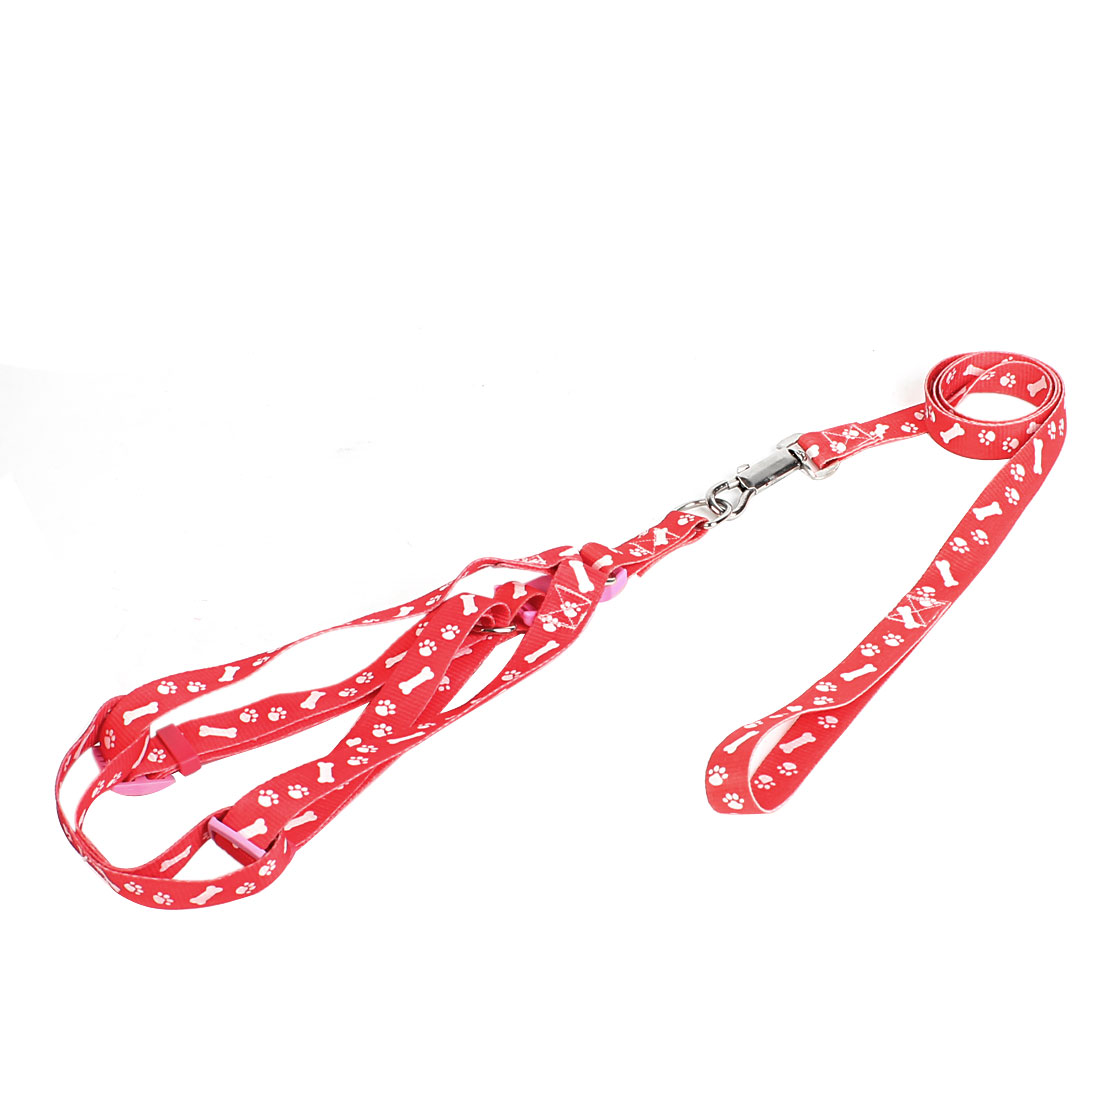 Trigger Hook Release Buckle White Bone Paw Pattern Pet Dog Yorkie Harness Halter Leash Red